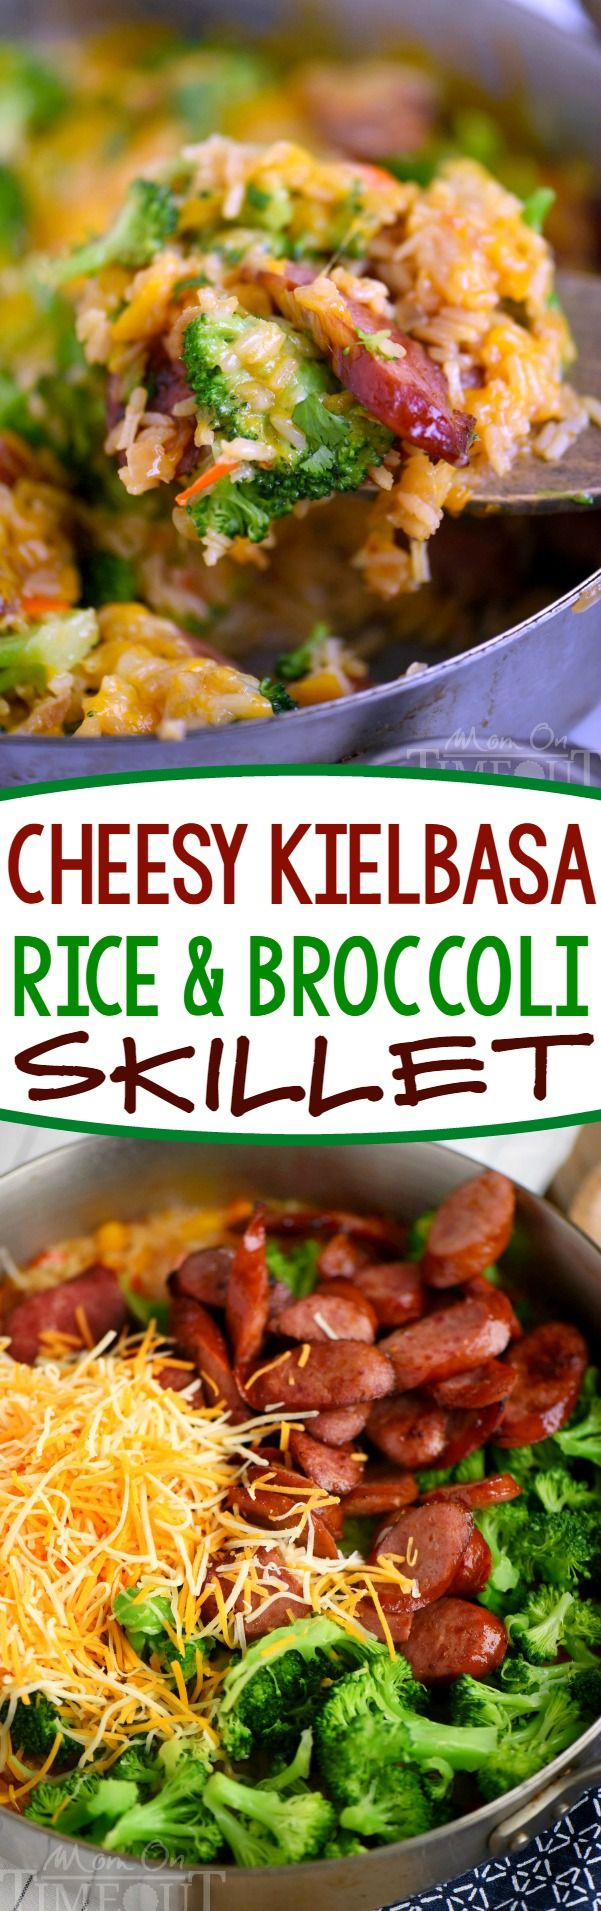 Cheesy Kielbasa, Rice and Broccoli Skillet - your new favorite dinner! This easy skillet recipe comes together in a flash and is made in a single skillet for easy clean-up. Extra cheesy, and just bursting with flavor, it's a dinner recipe you'll find yourself making again and again. // Mom On Timeout